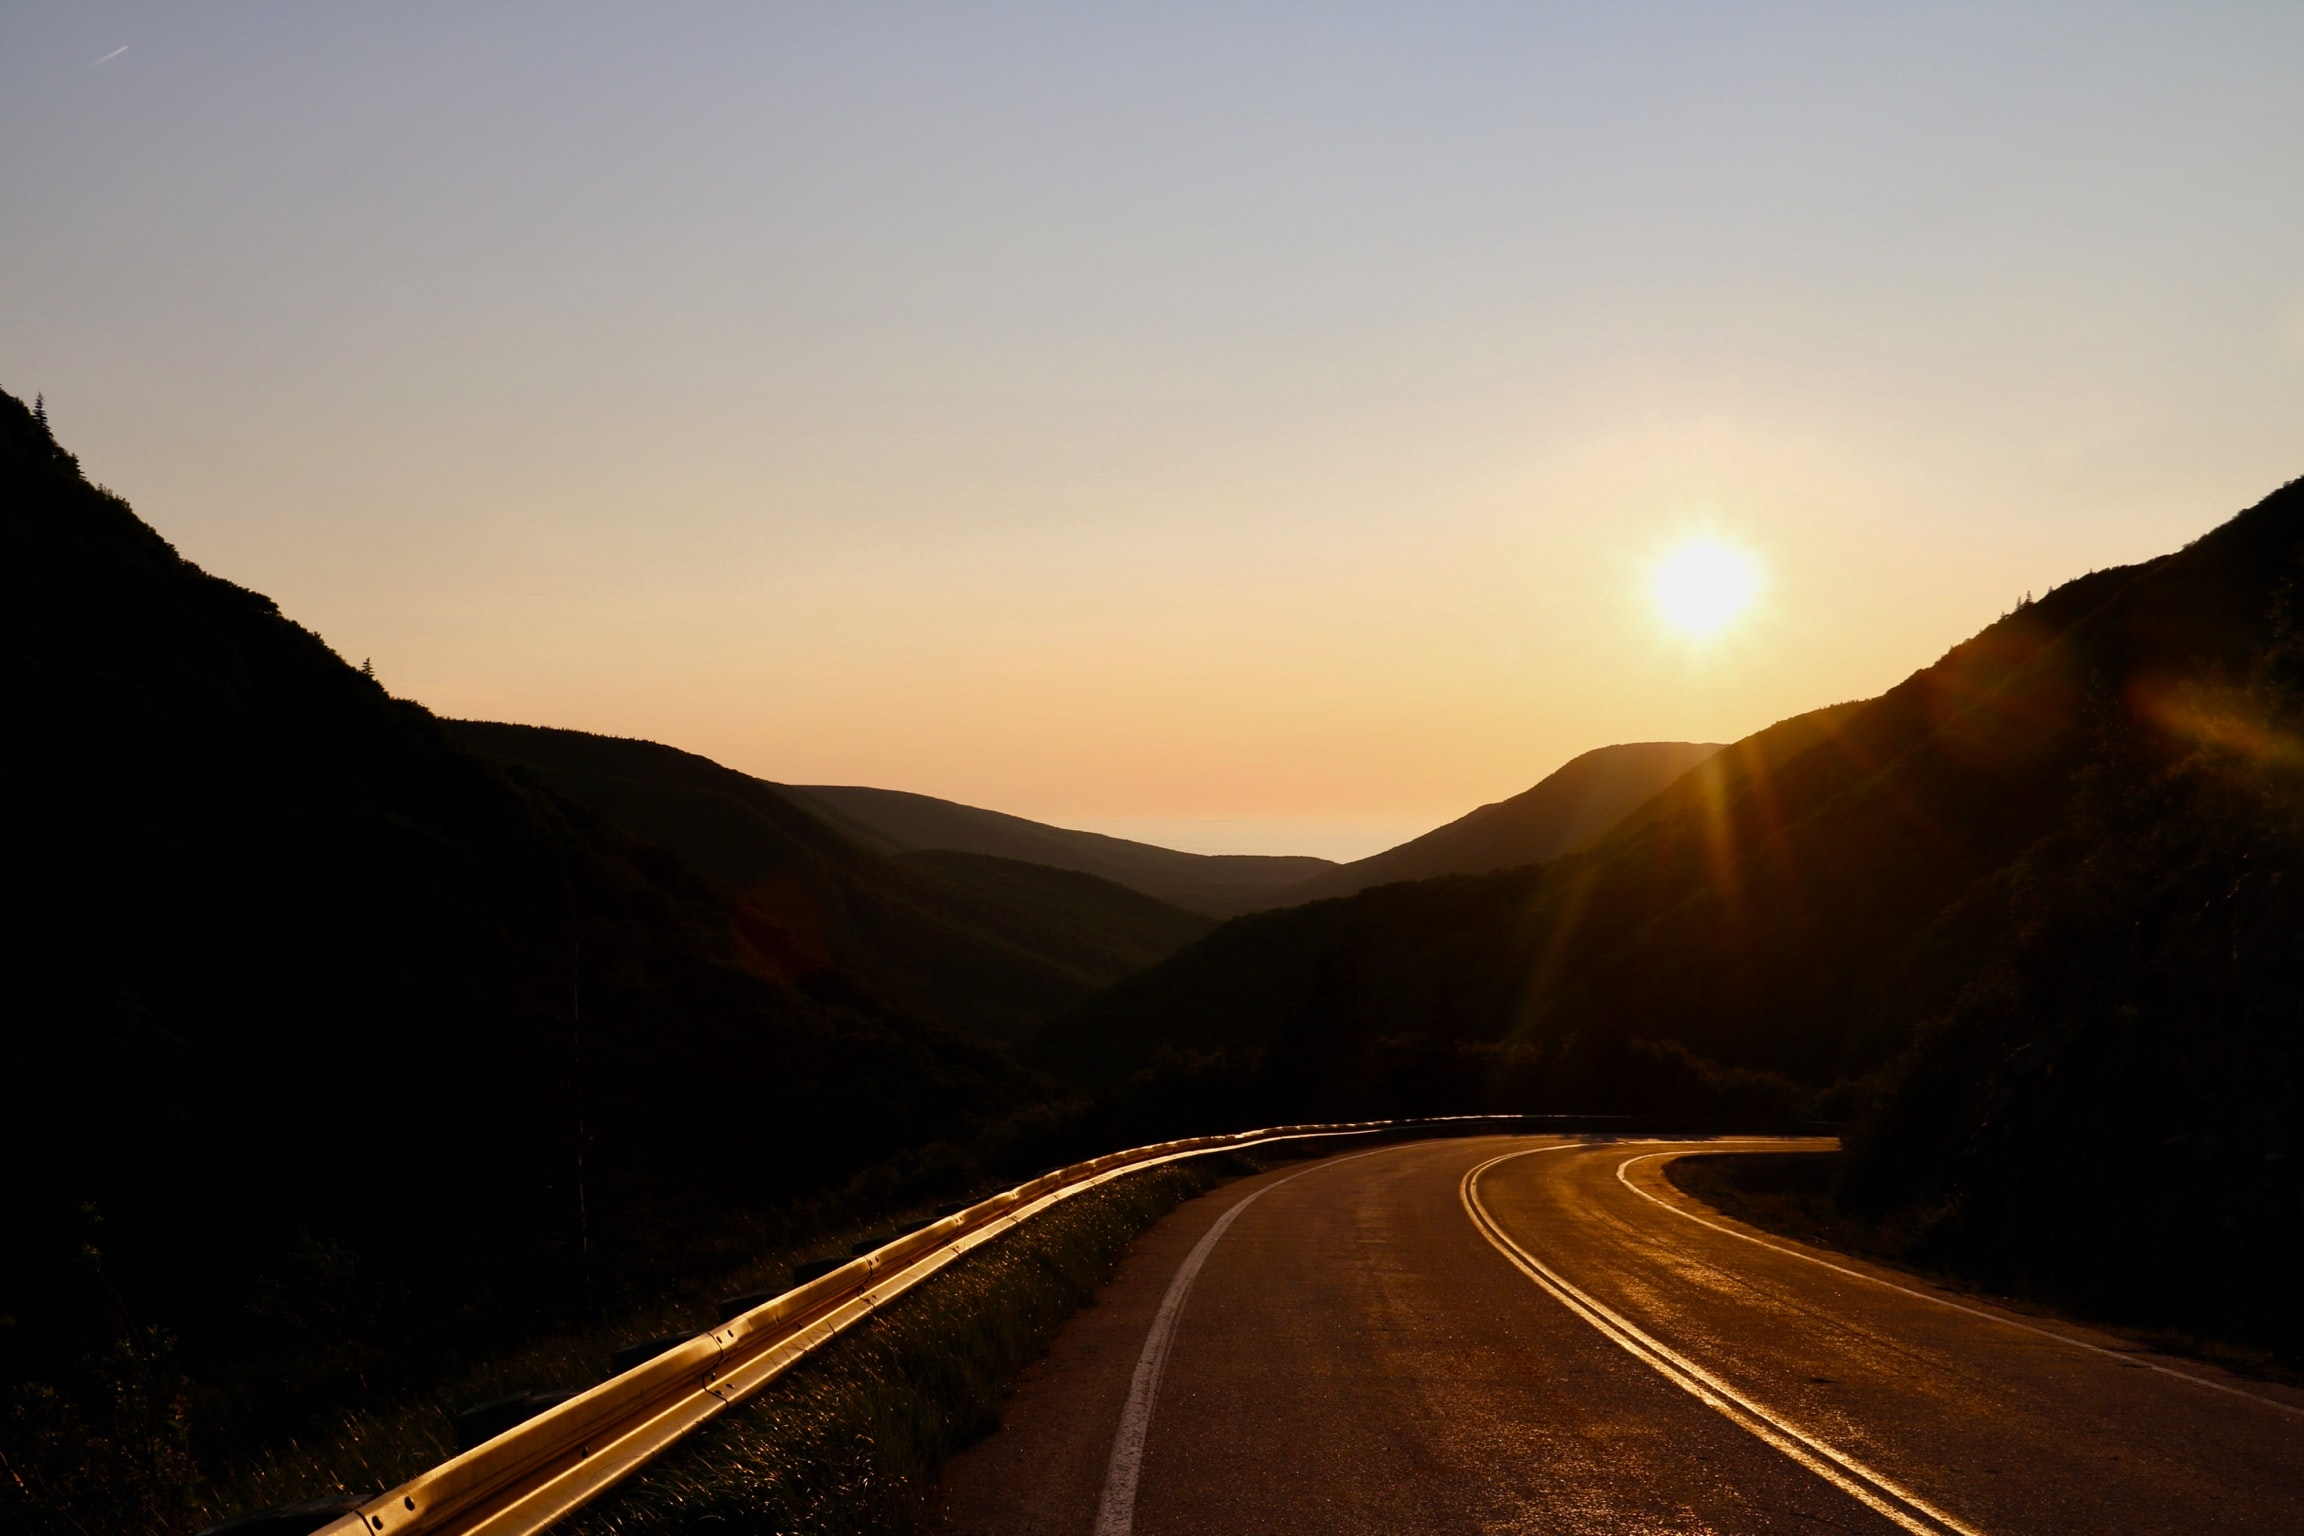 road between mountains during sunset